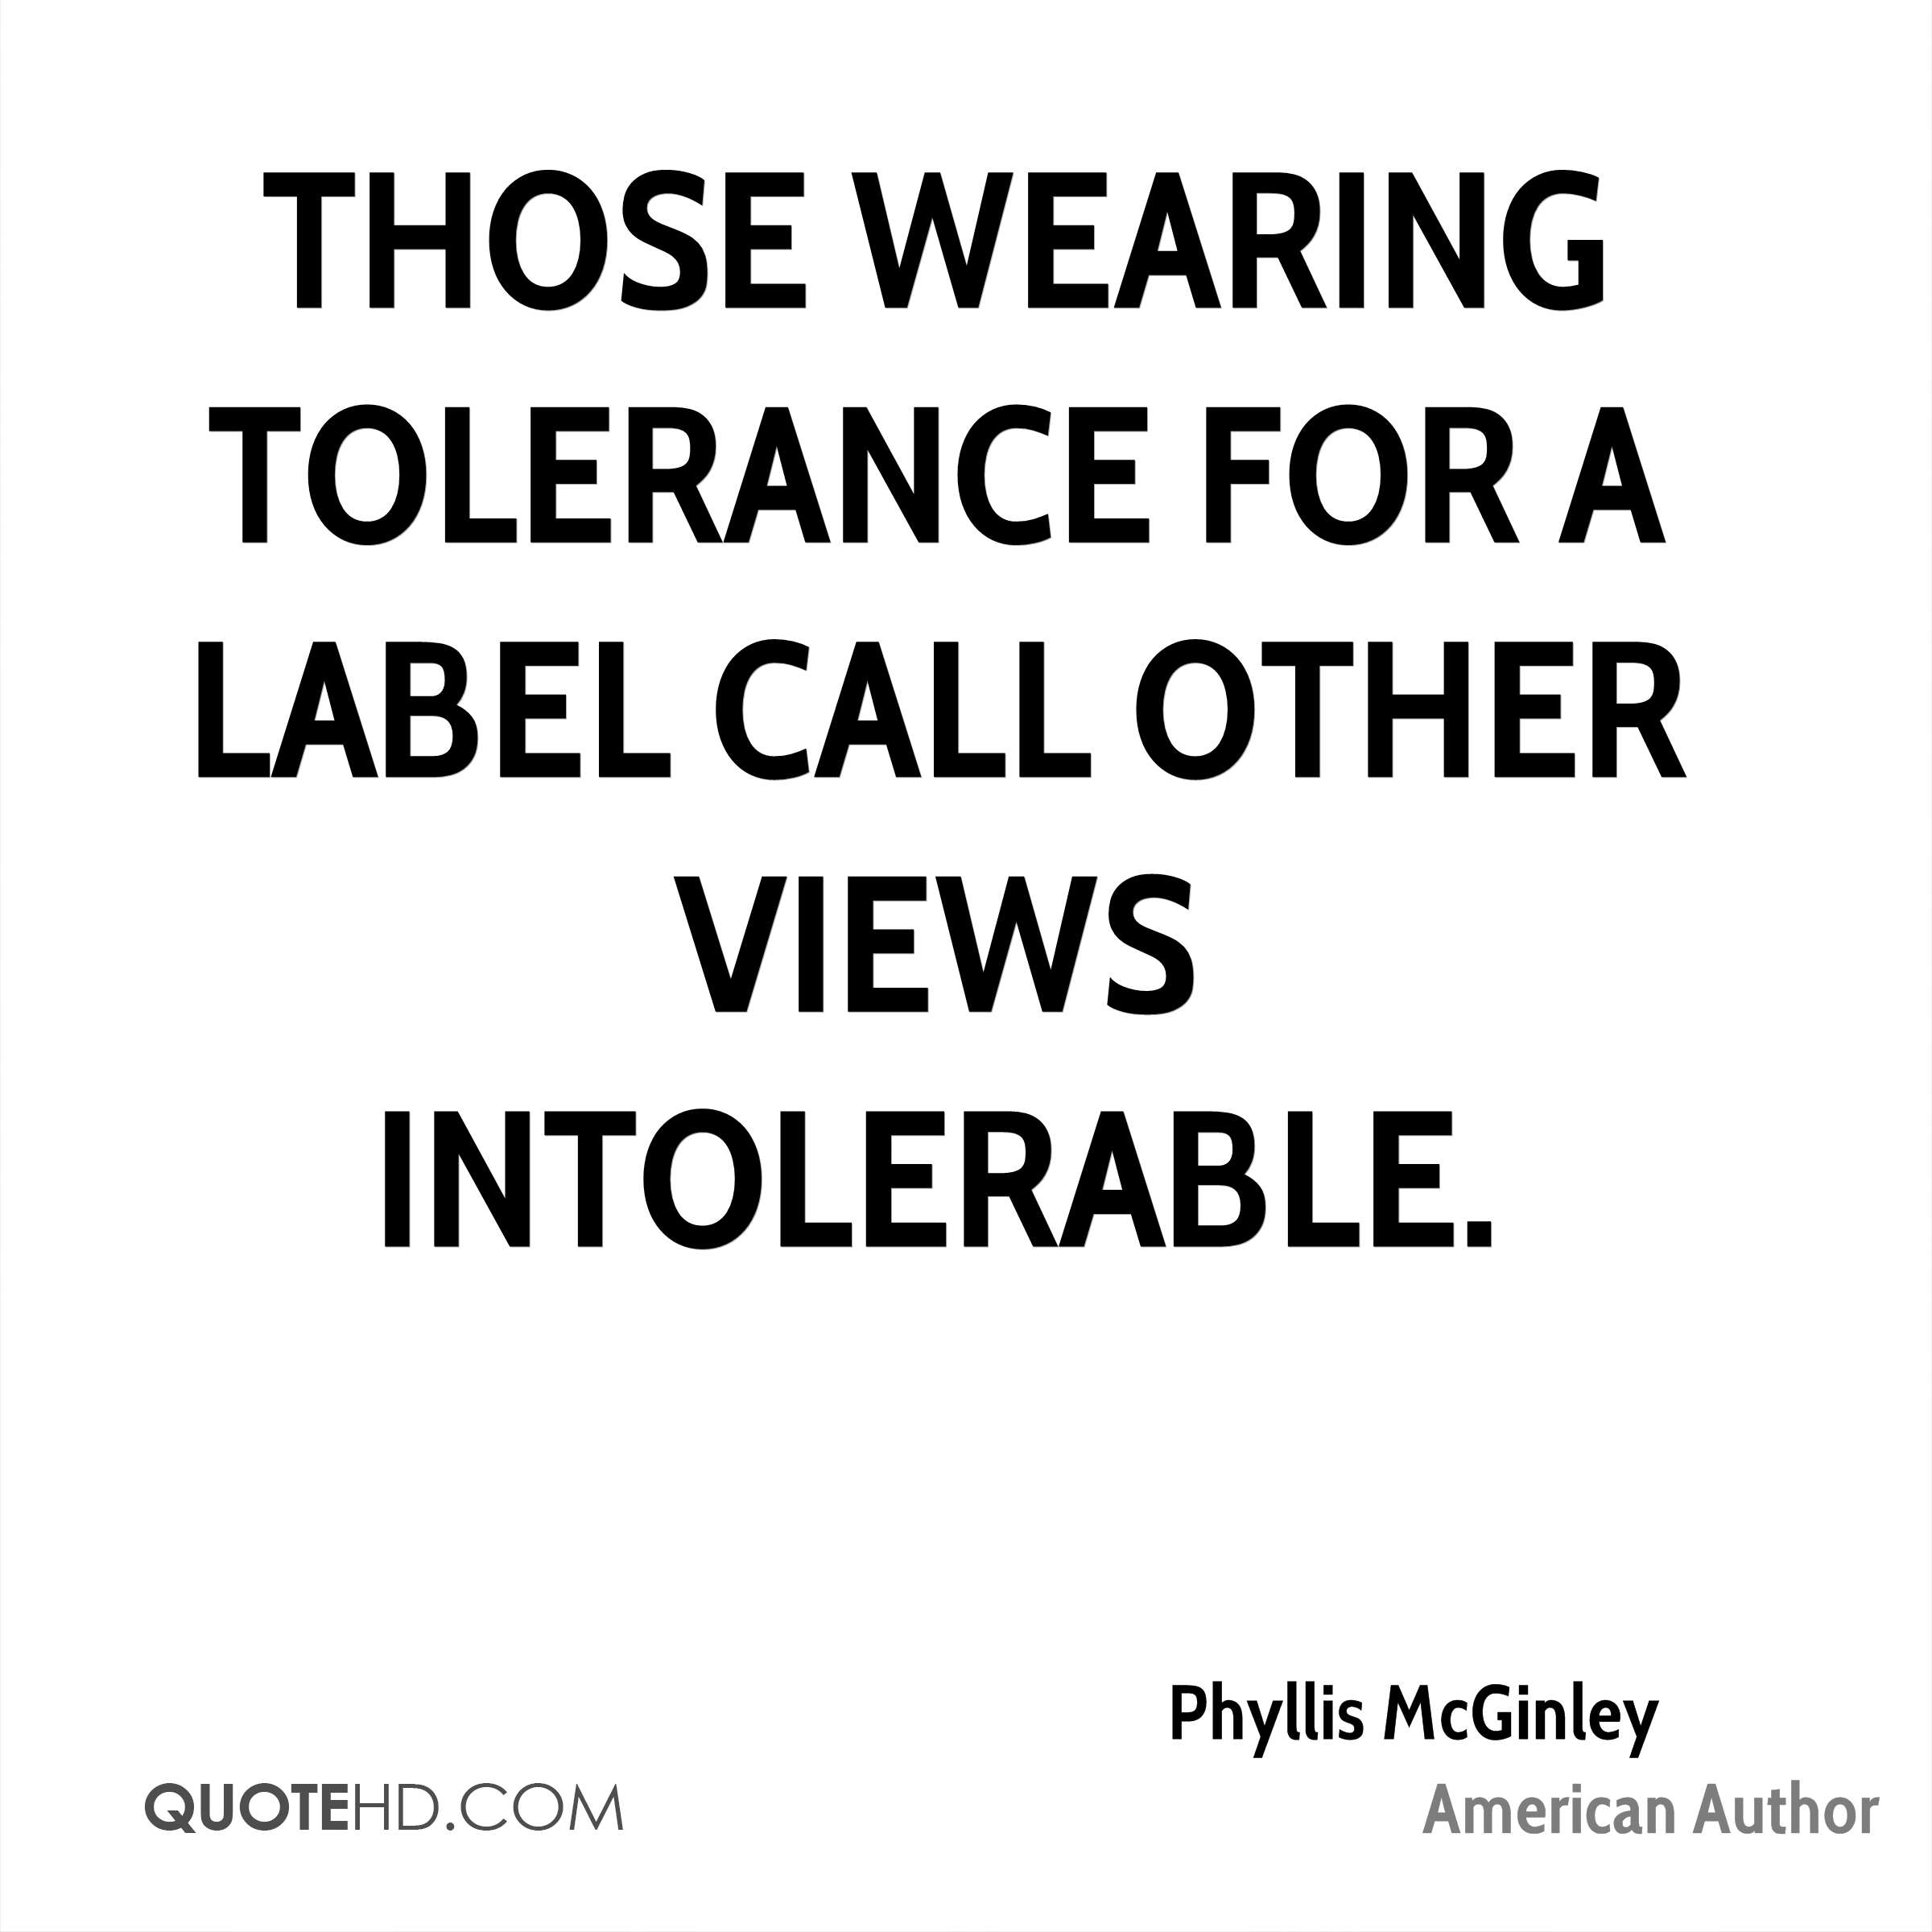 Those wearing tolerance for a label call other views intolerable.